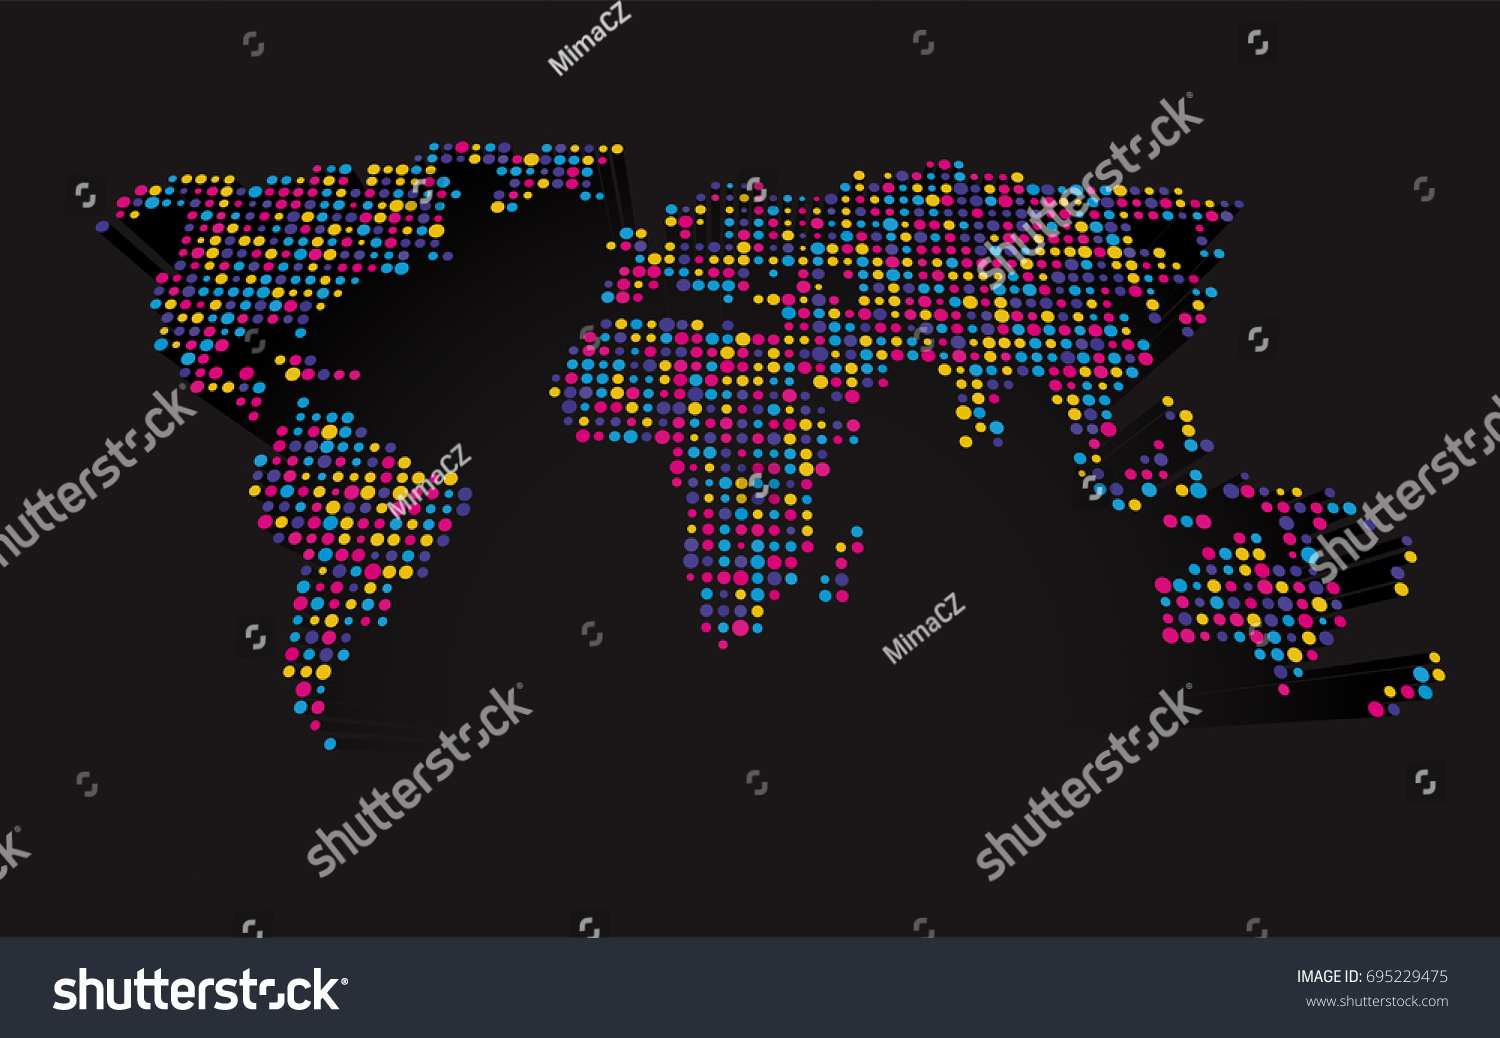 Abstract 3 d world map made small stock vector 695229475 shutterstock gumiabroncs Image collections